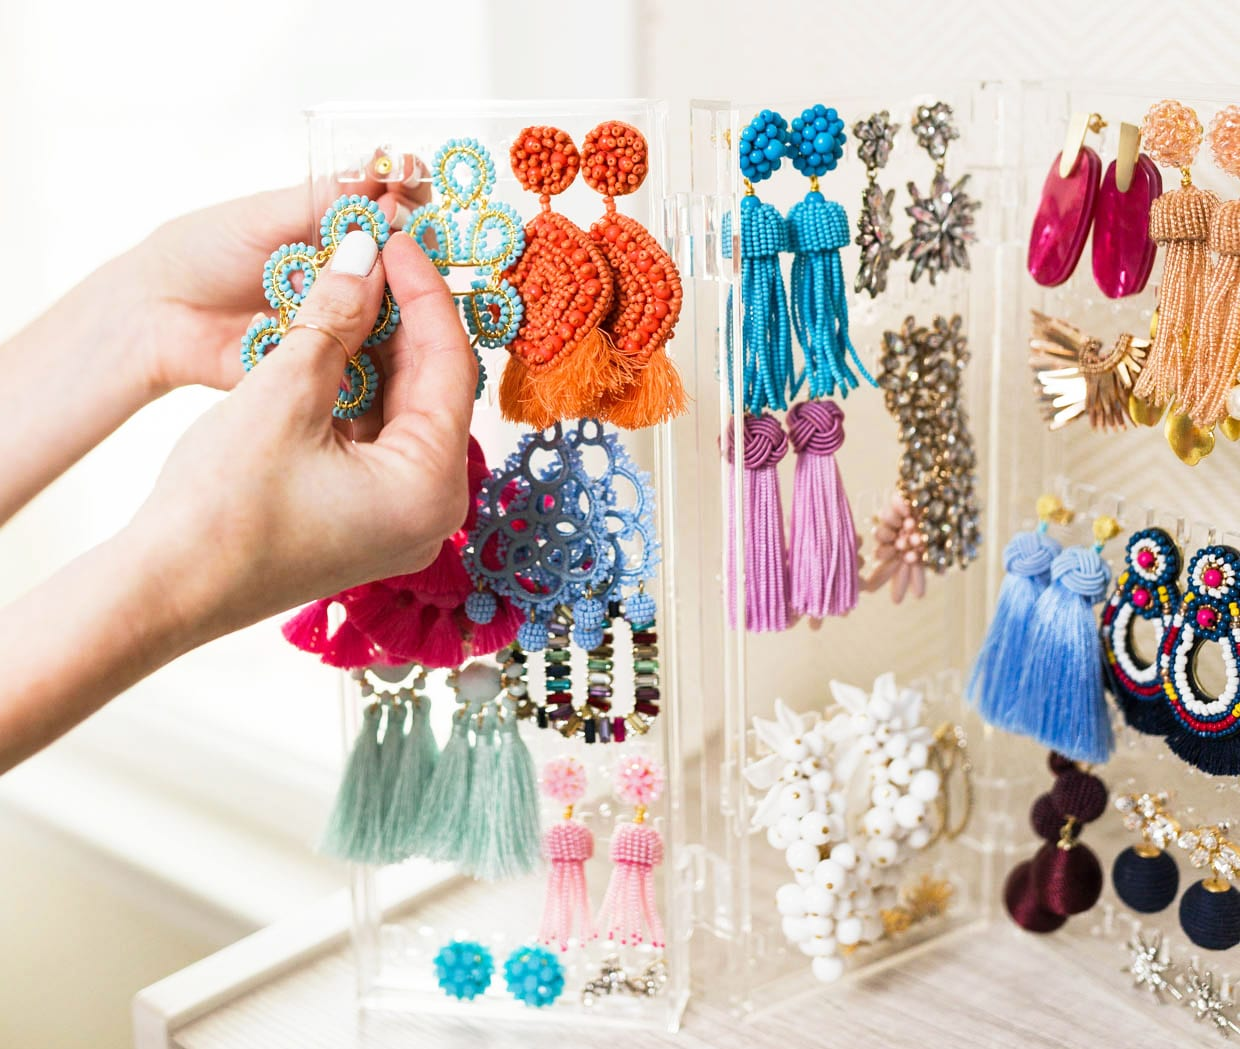 Petite fashions accessories